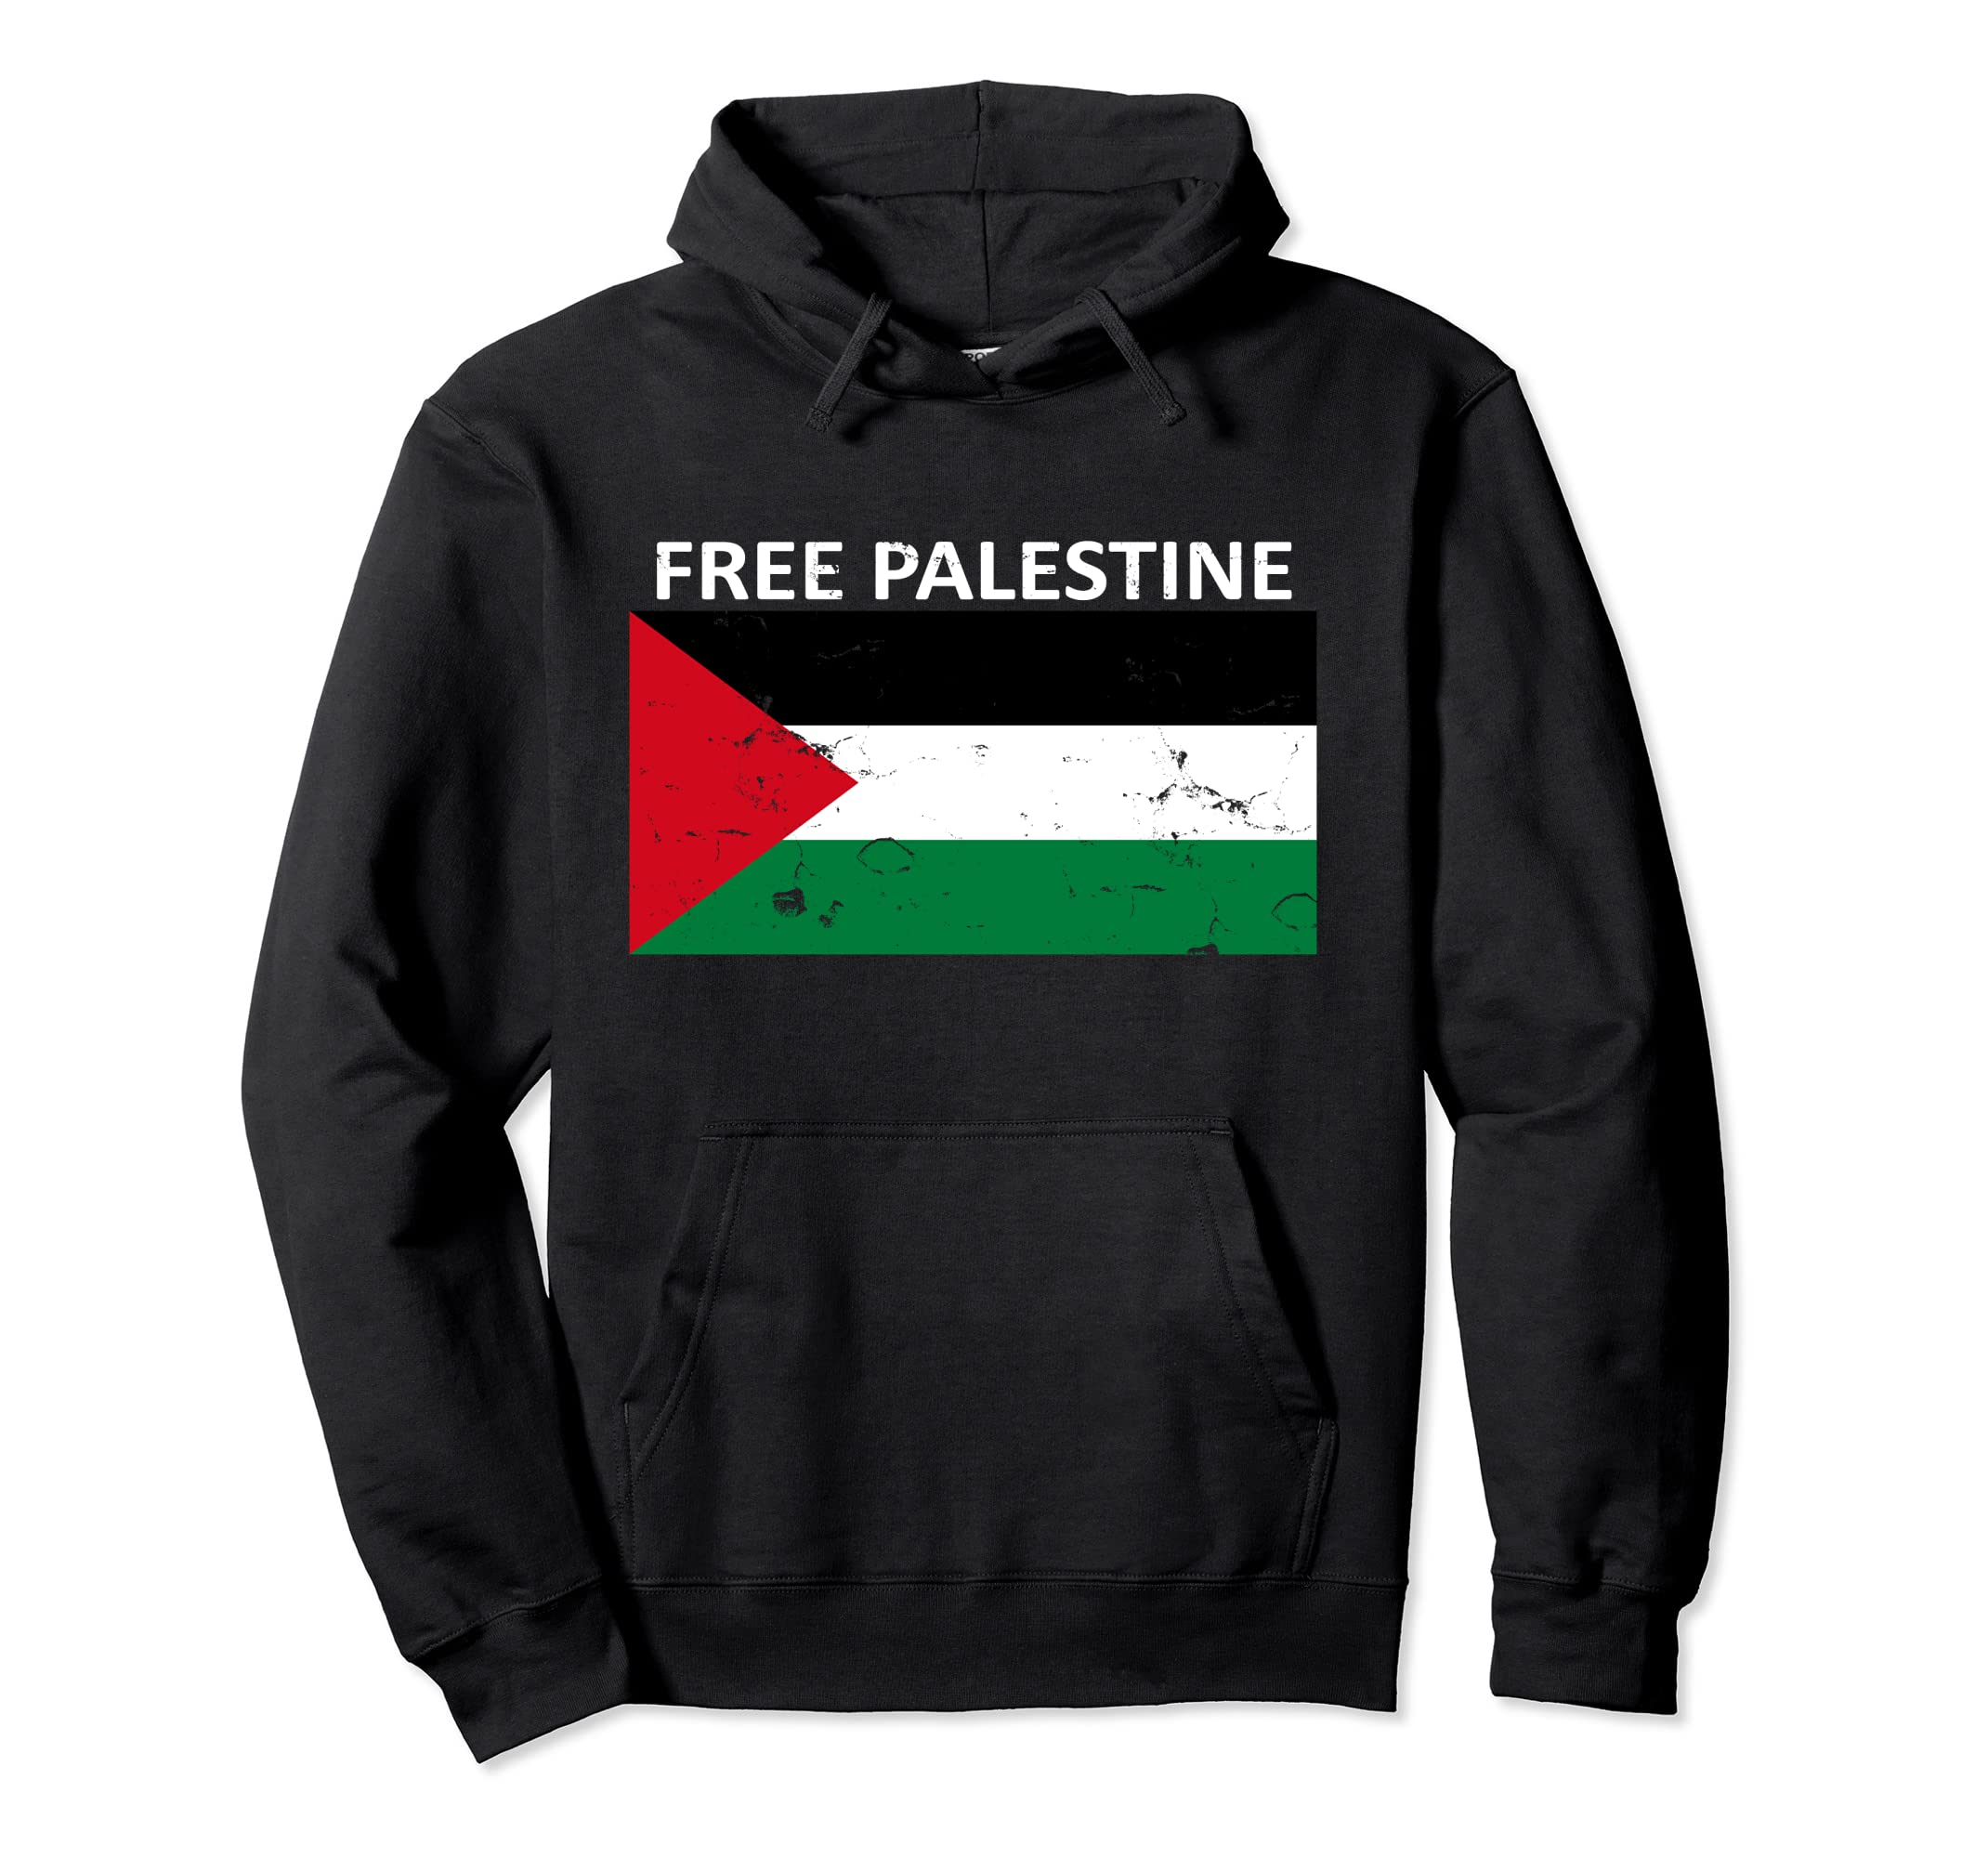 25cb9c722 Amazon.com: Free Palestine Hoodie Fist of Palestine Shirt: Clothing